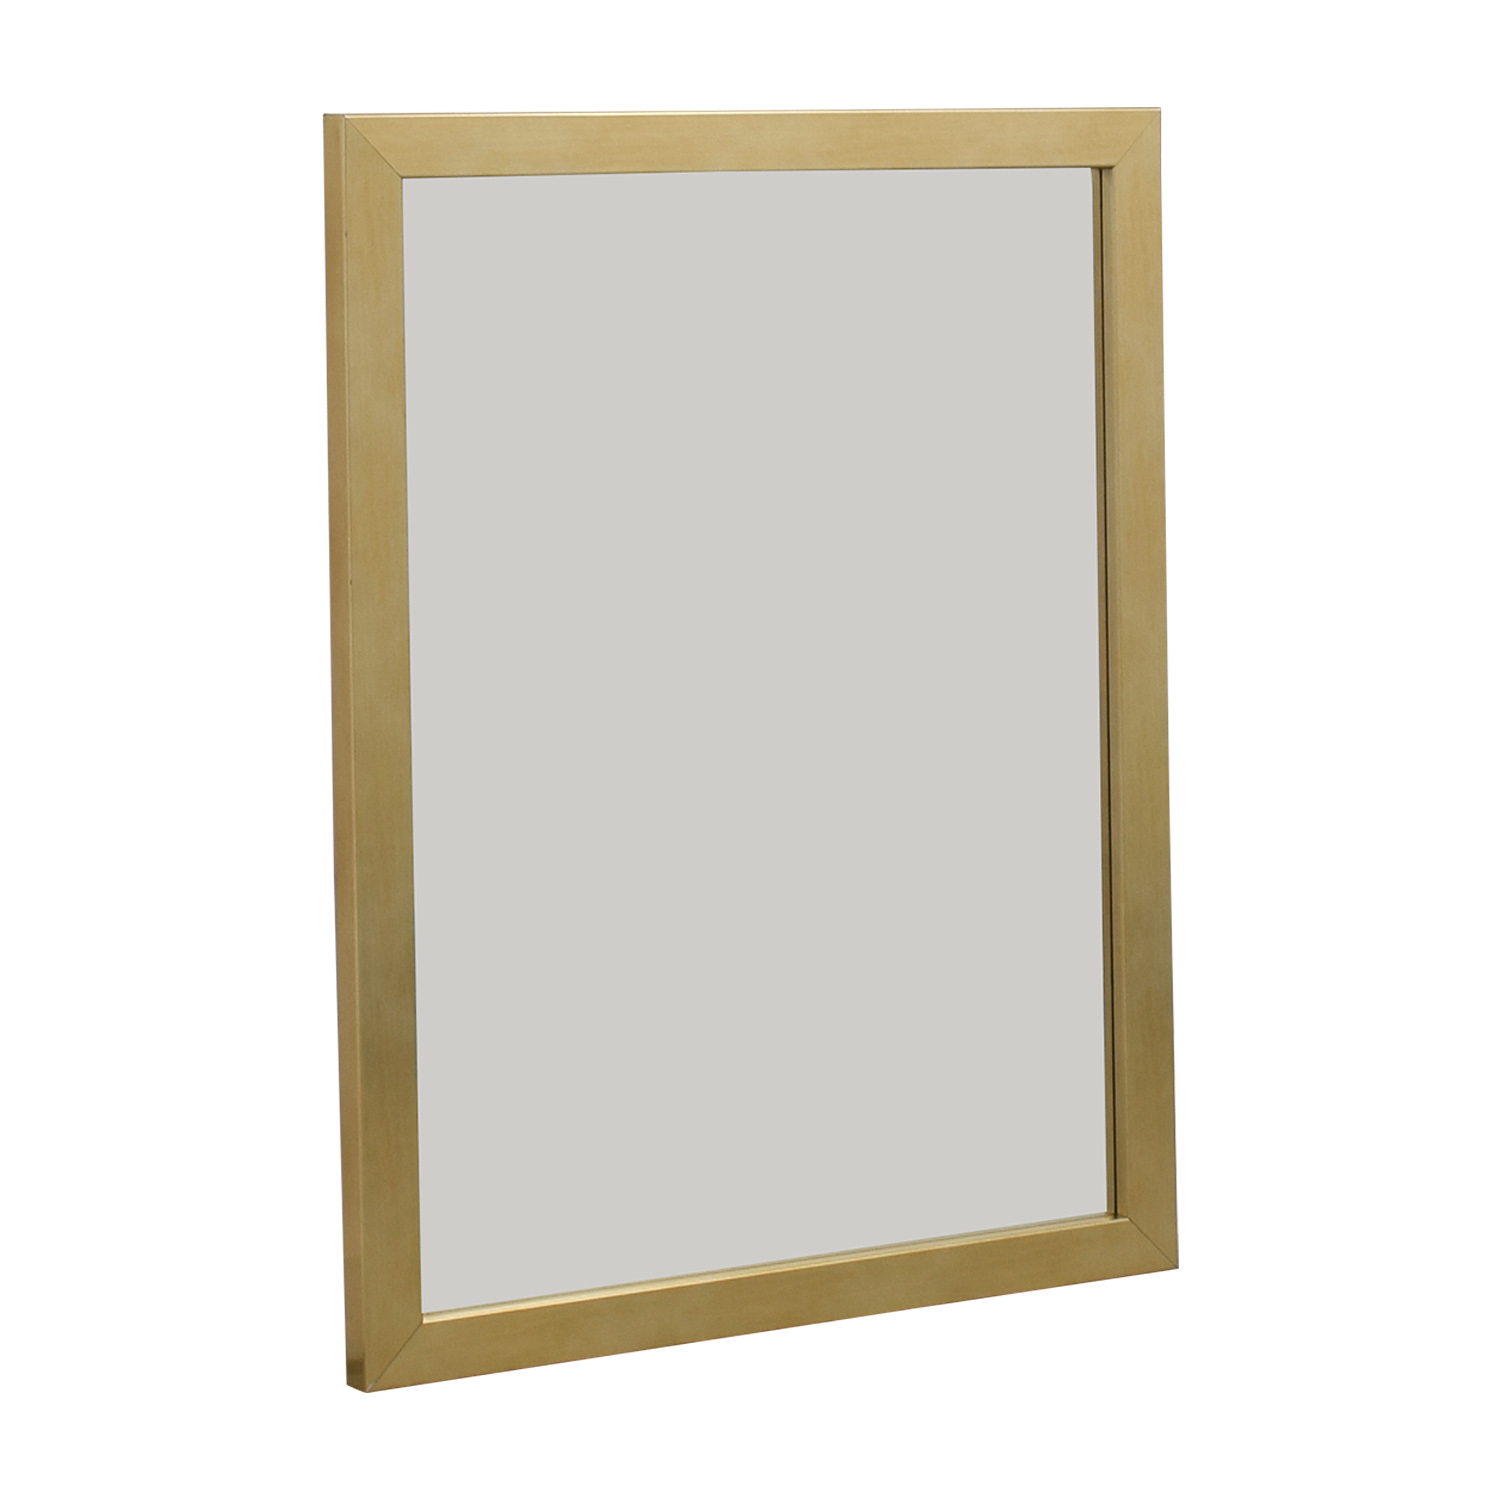 Hitchcock Butterfield Hitchcock Butterfield Gold Framed Mirror on sale